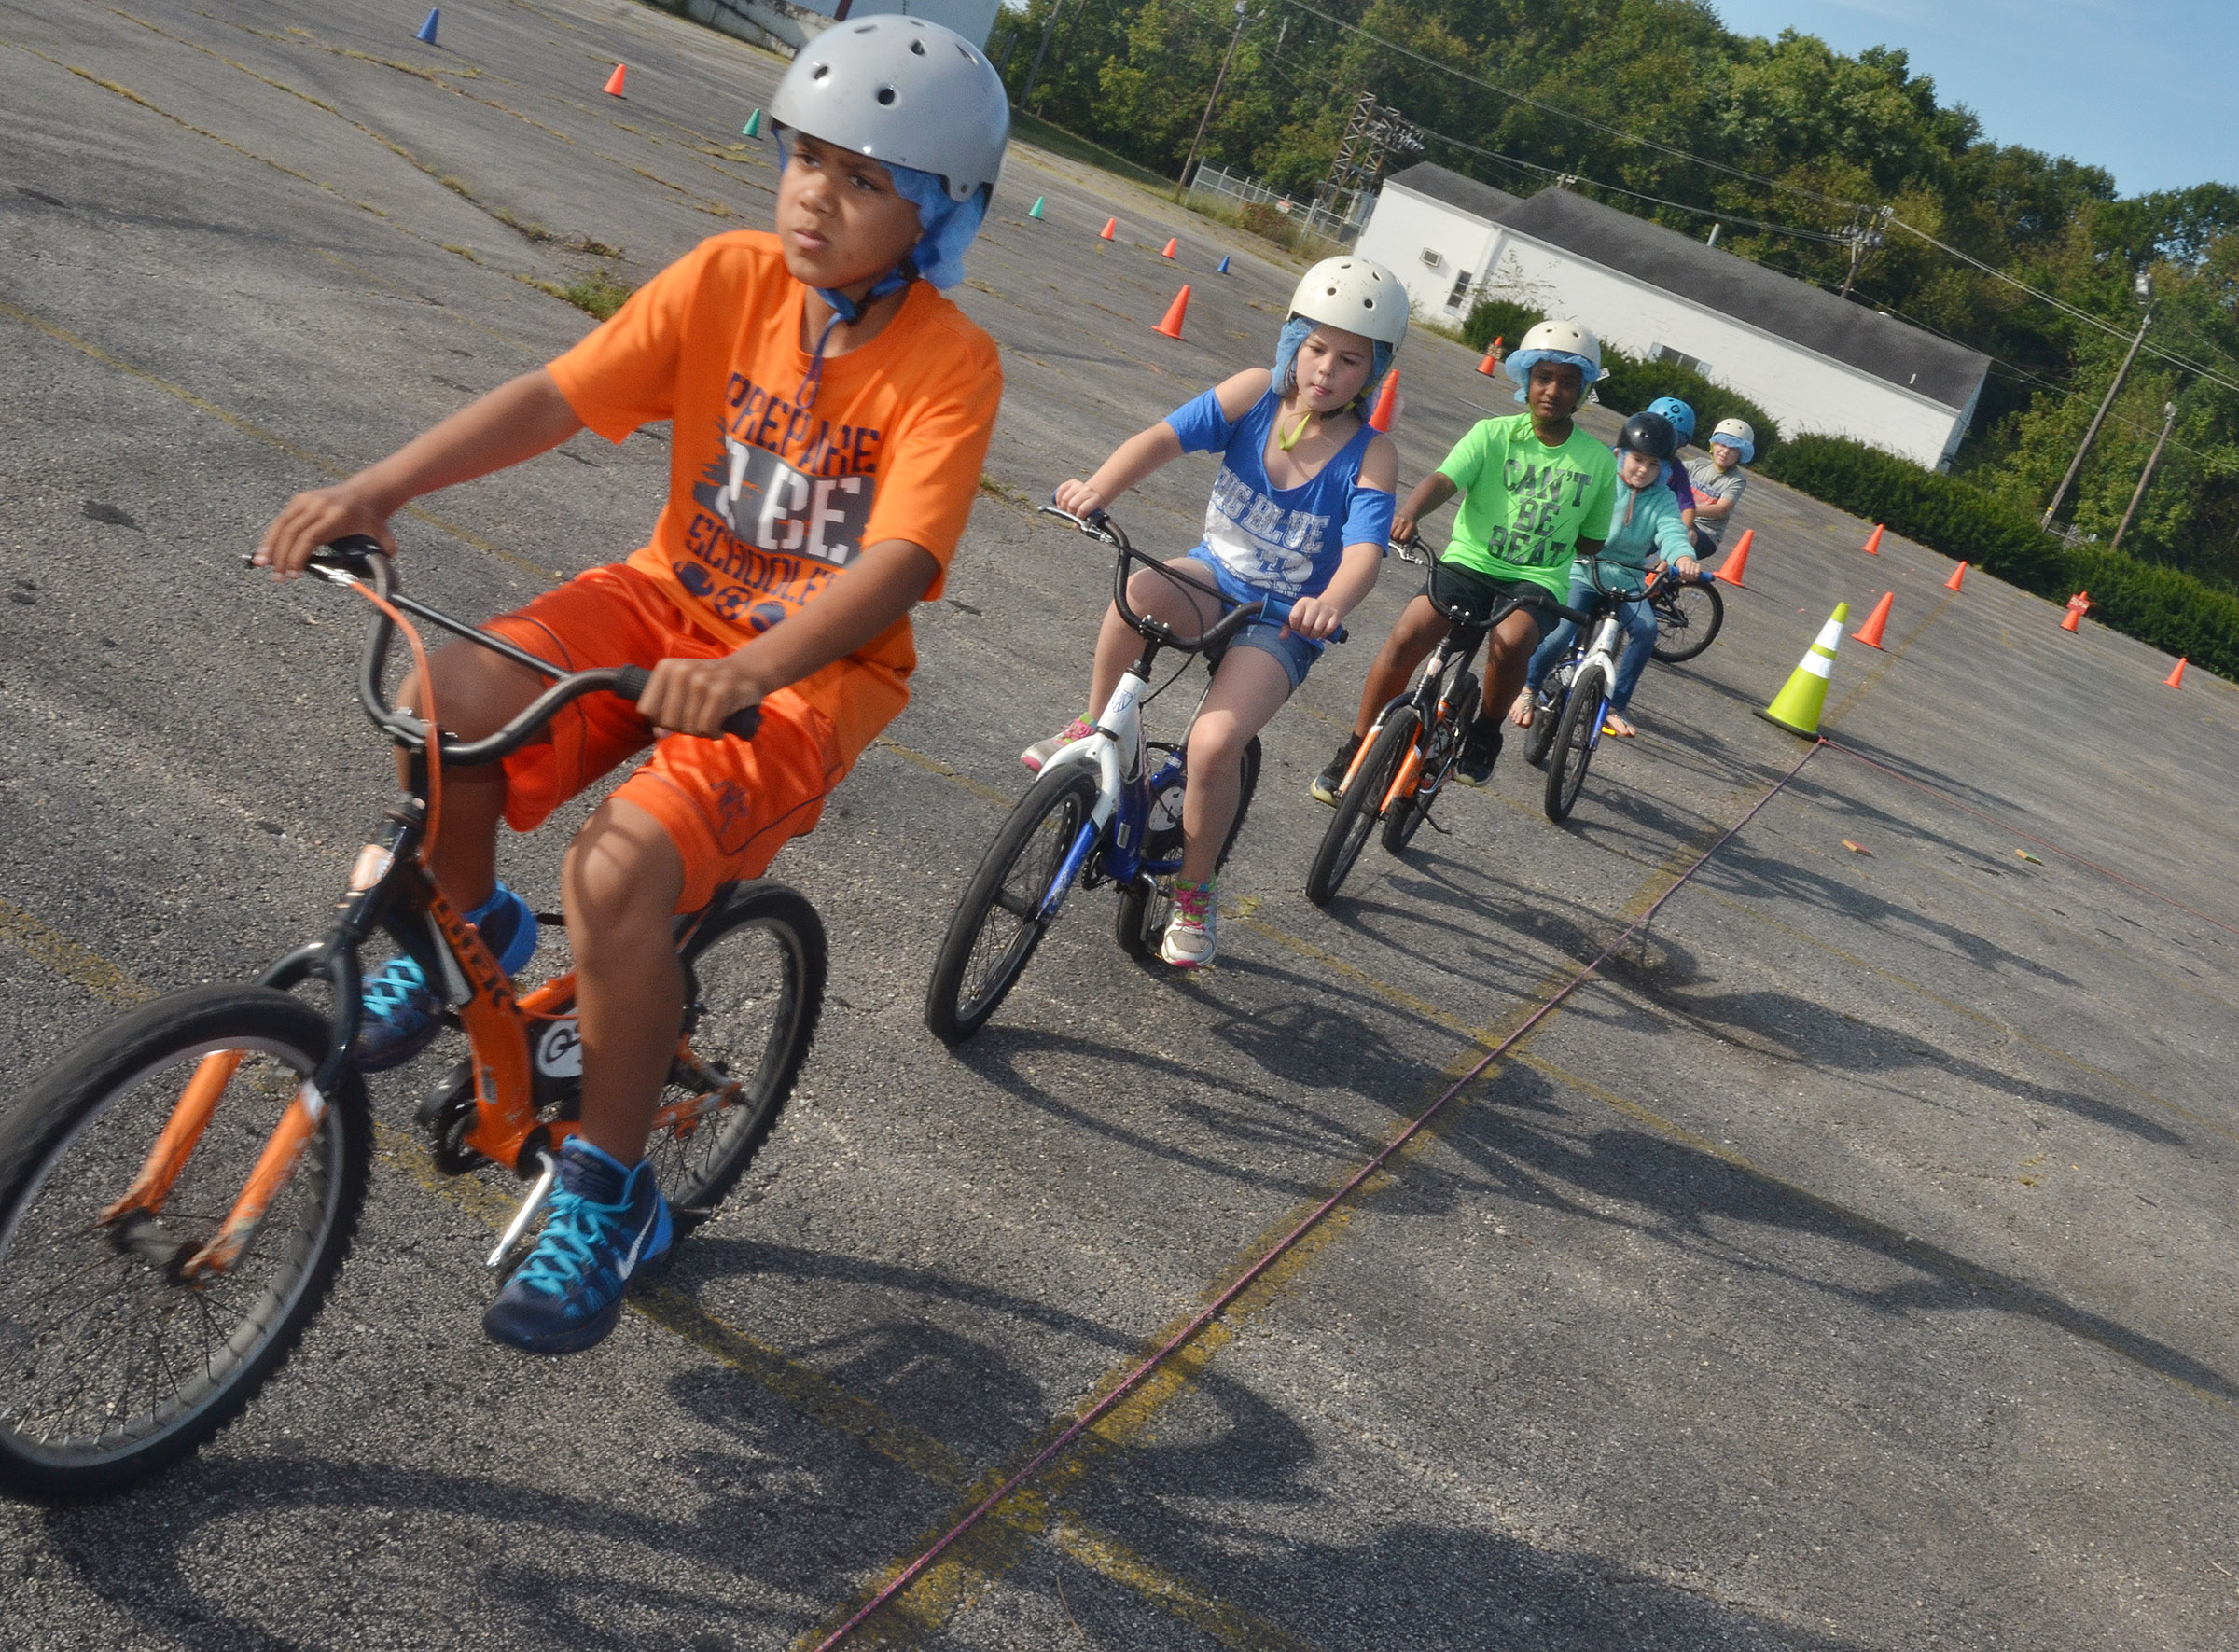 CES fourth-grader Christian Hart leads his classmates as they ride.